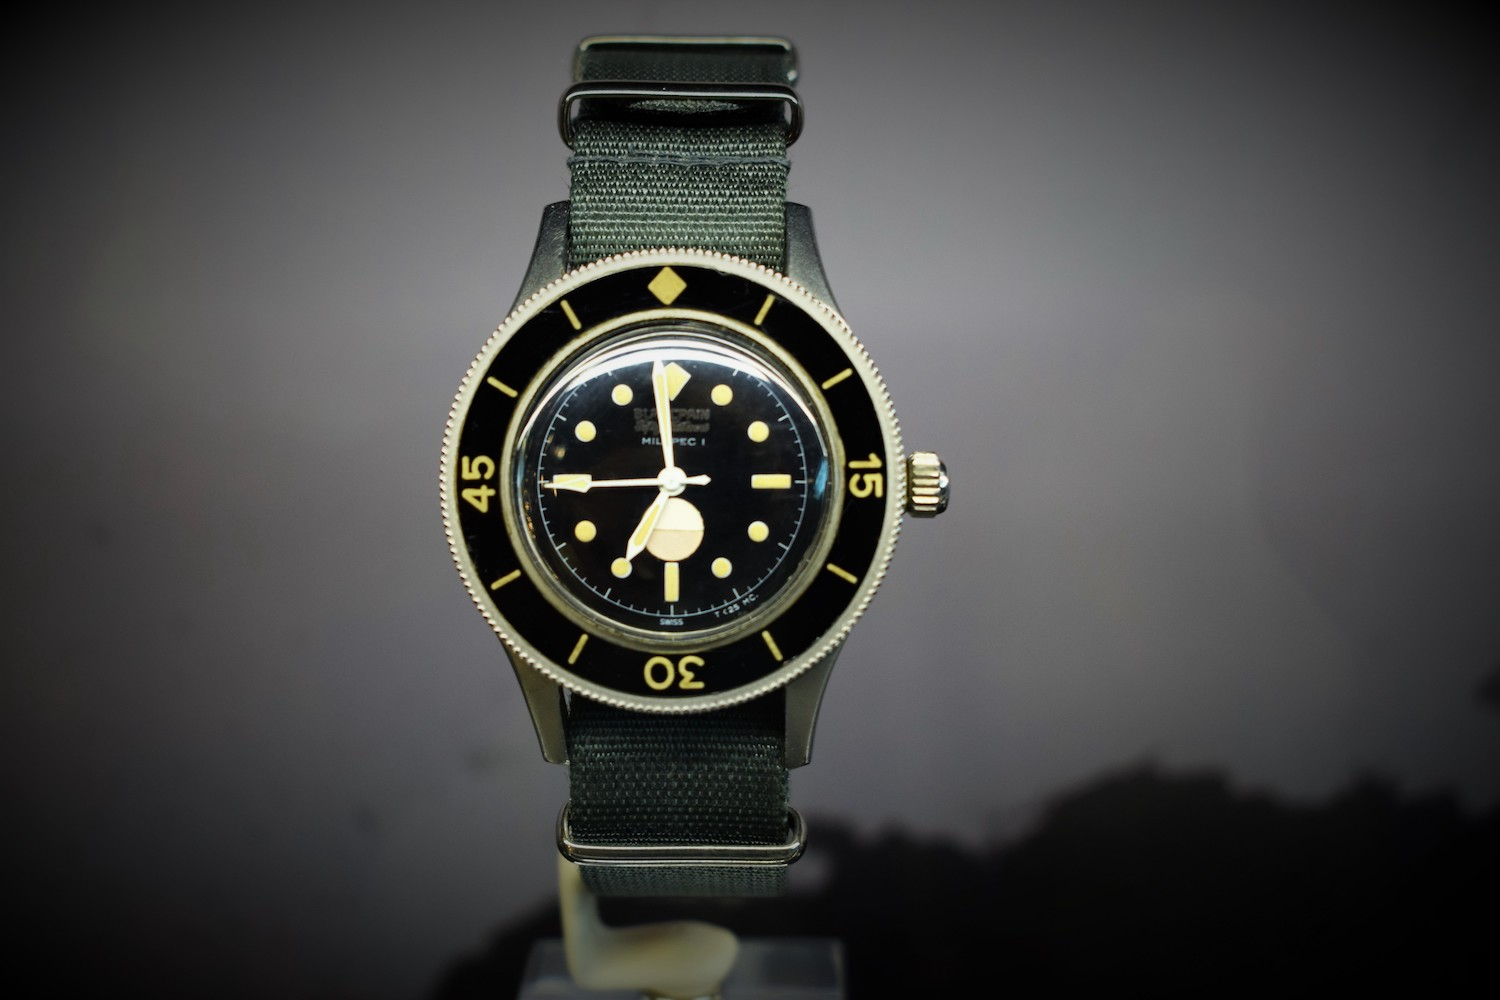 1958 Blancpain Fifty Fathoms MIL-SPEC